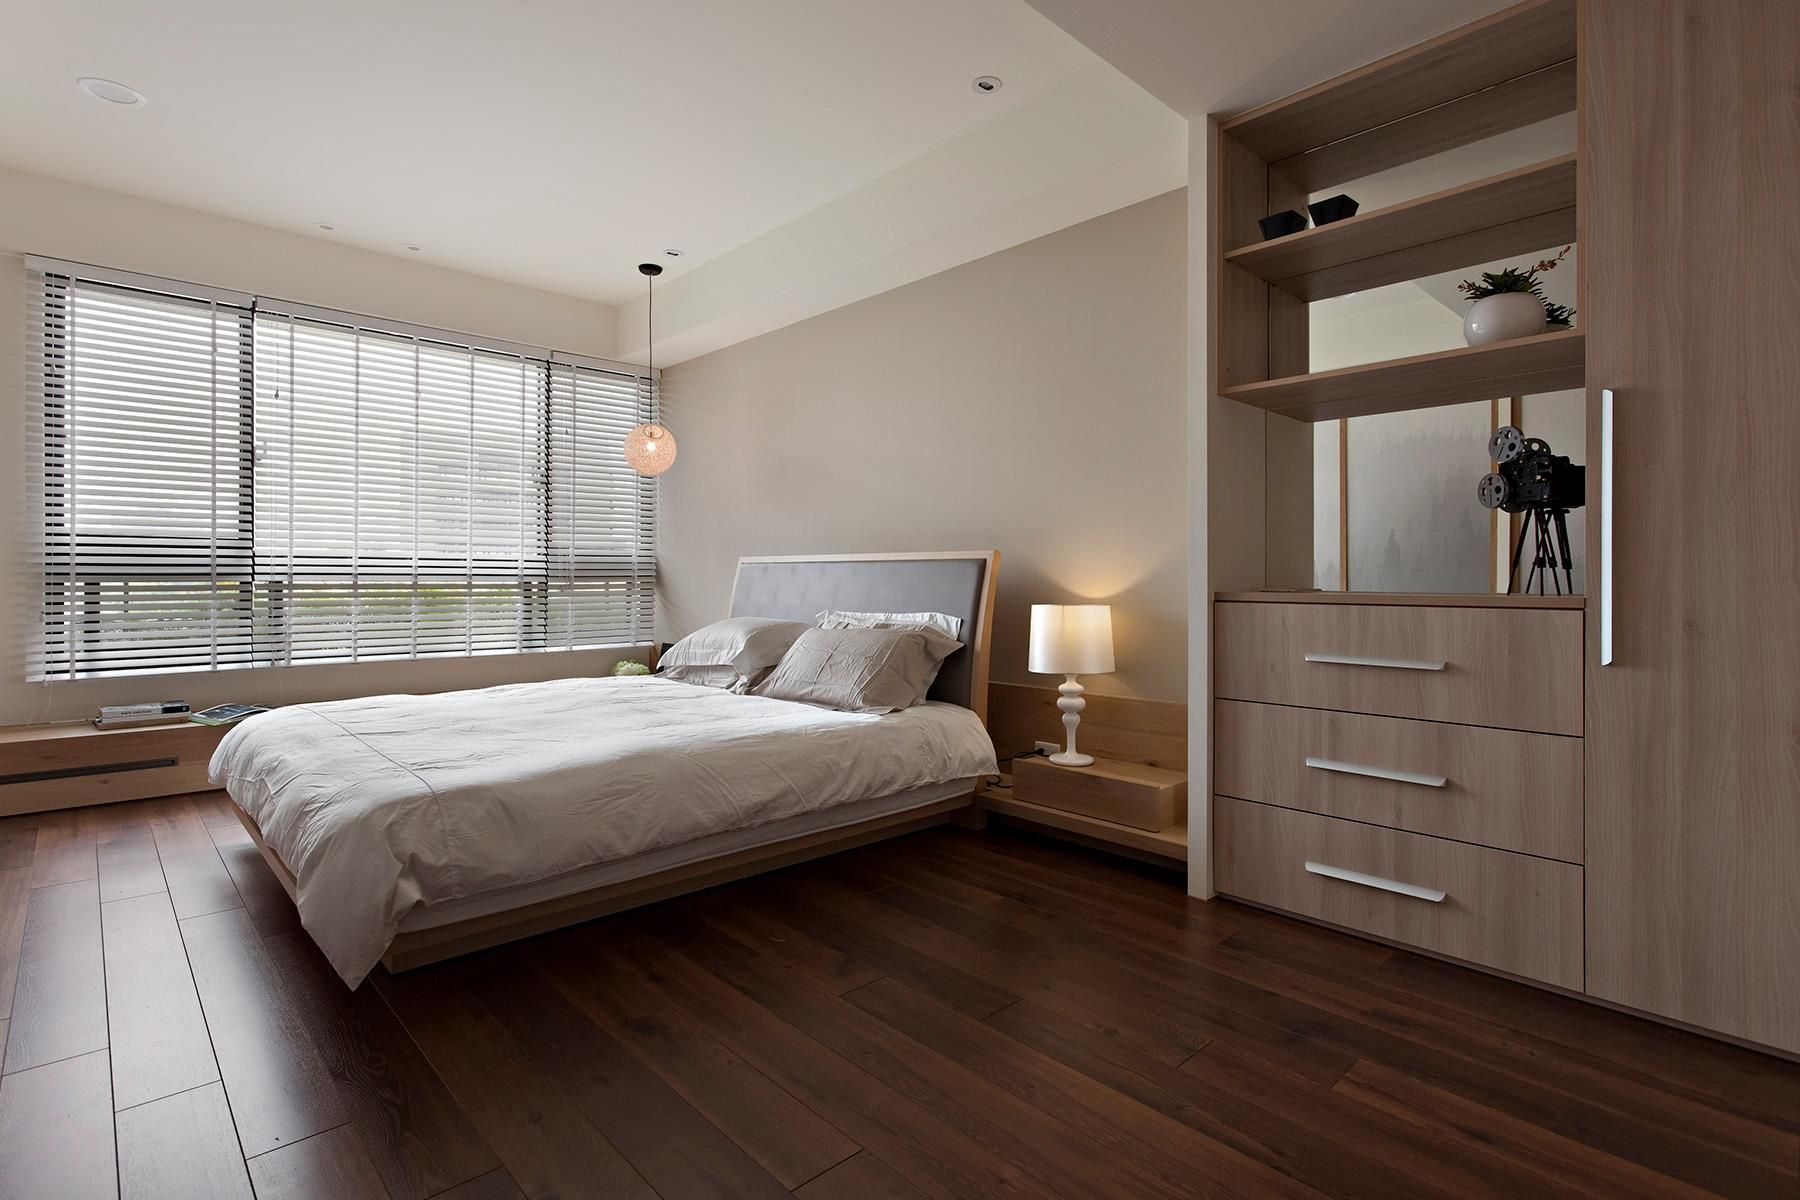 apartment-master-bedroom-with-brown-interior-decoration-ideas-plus